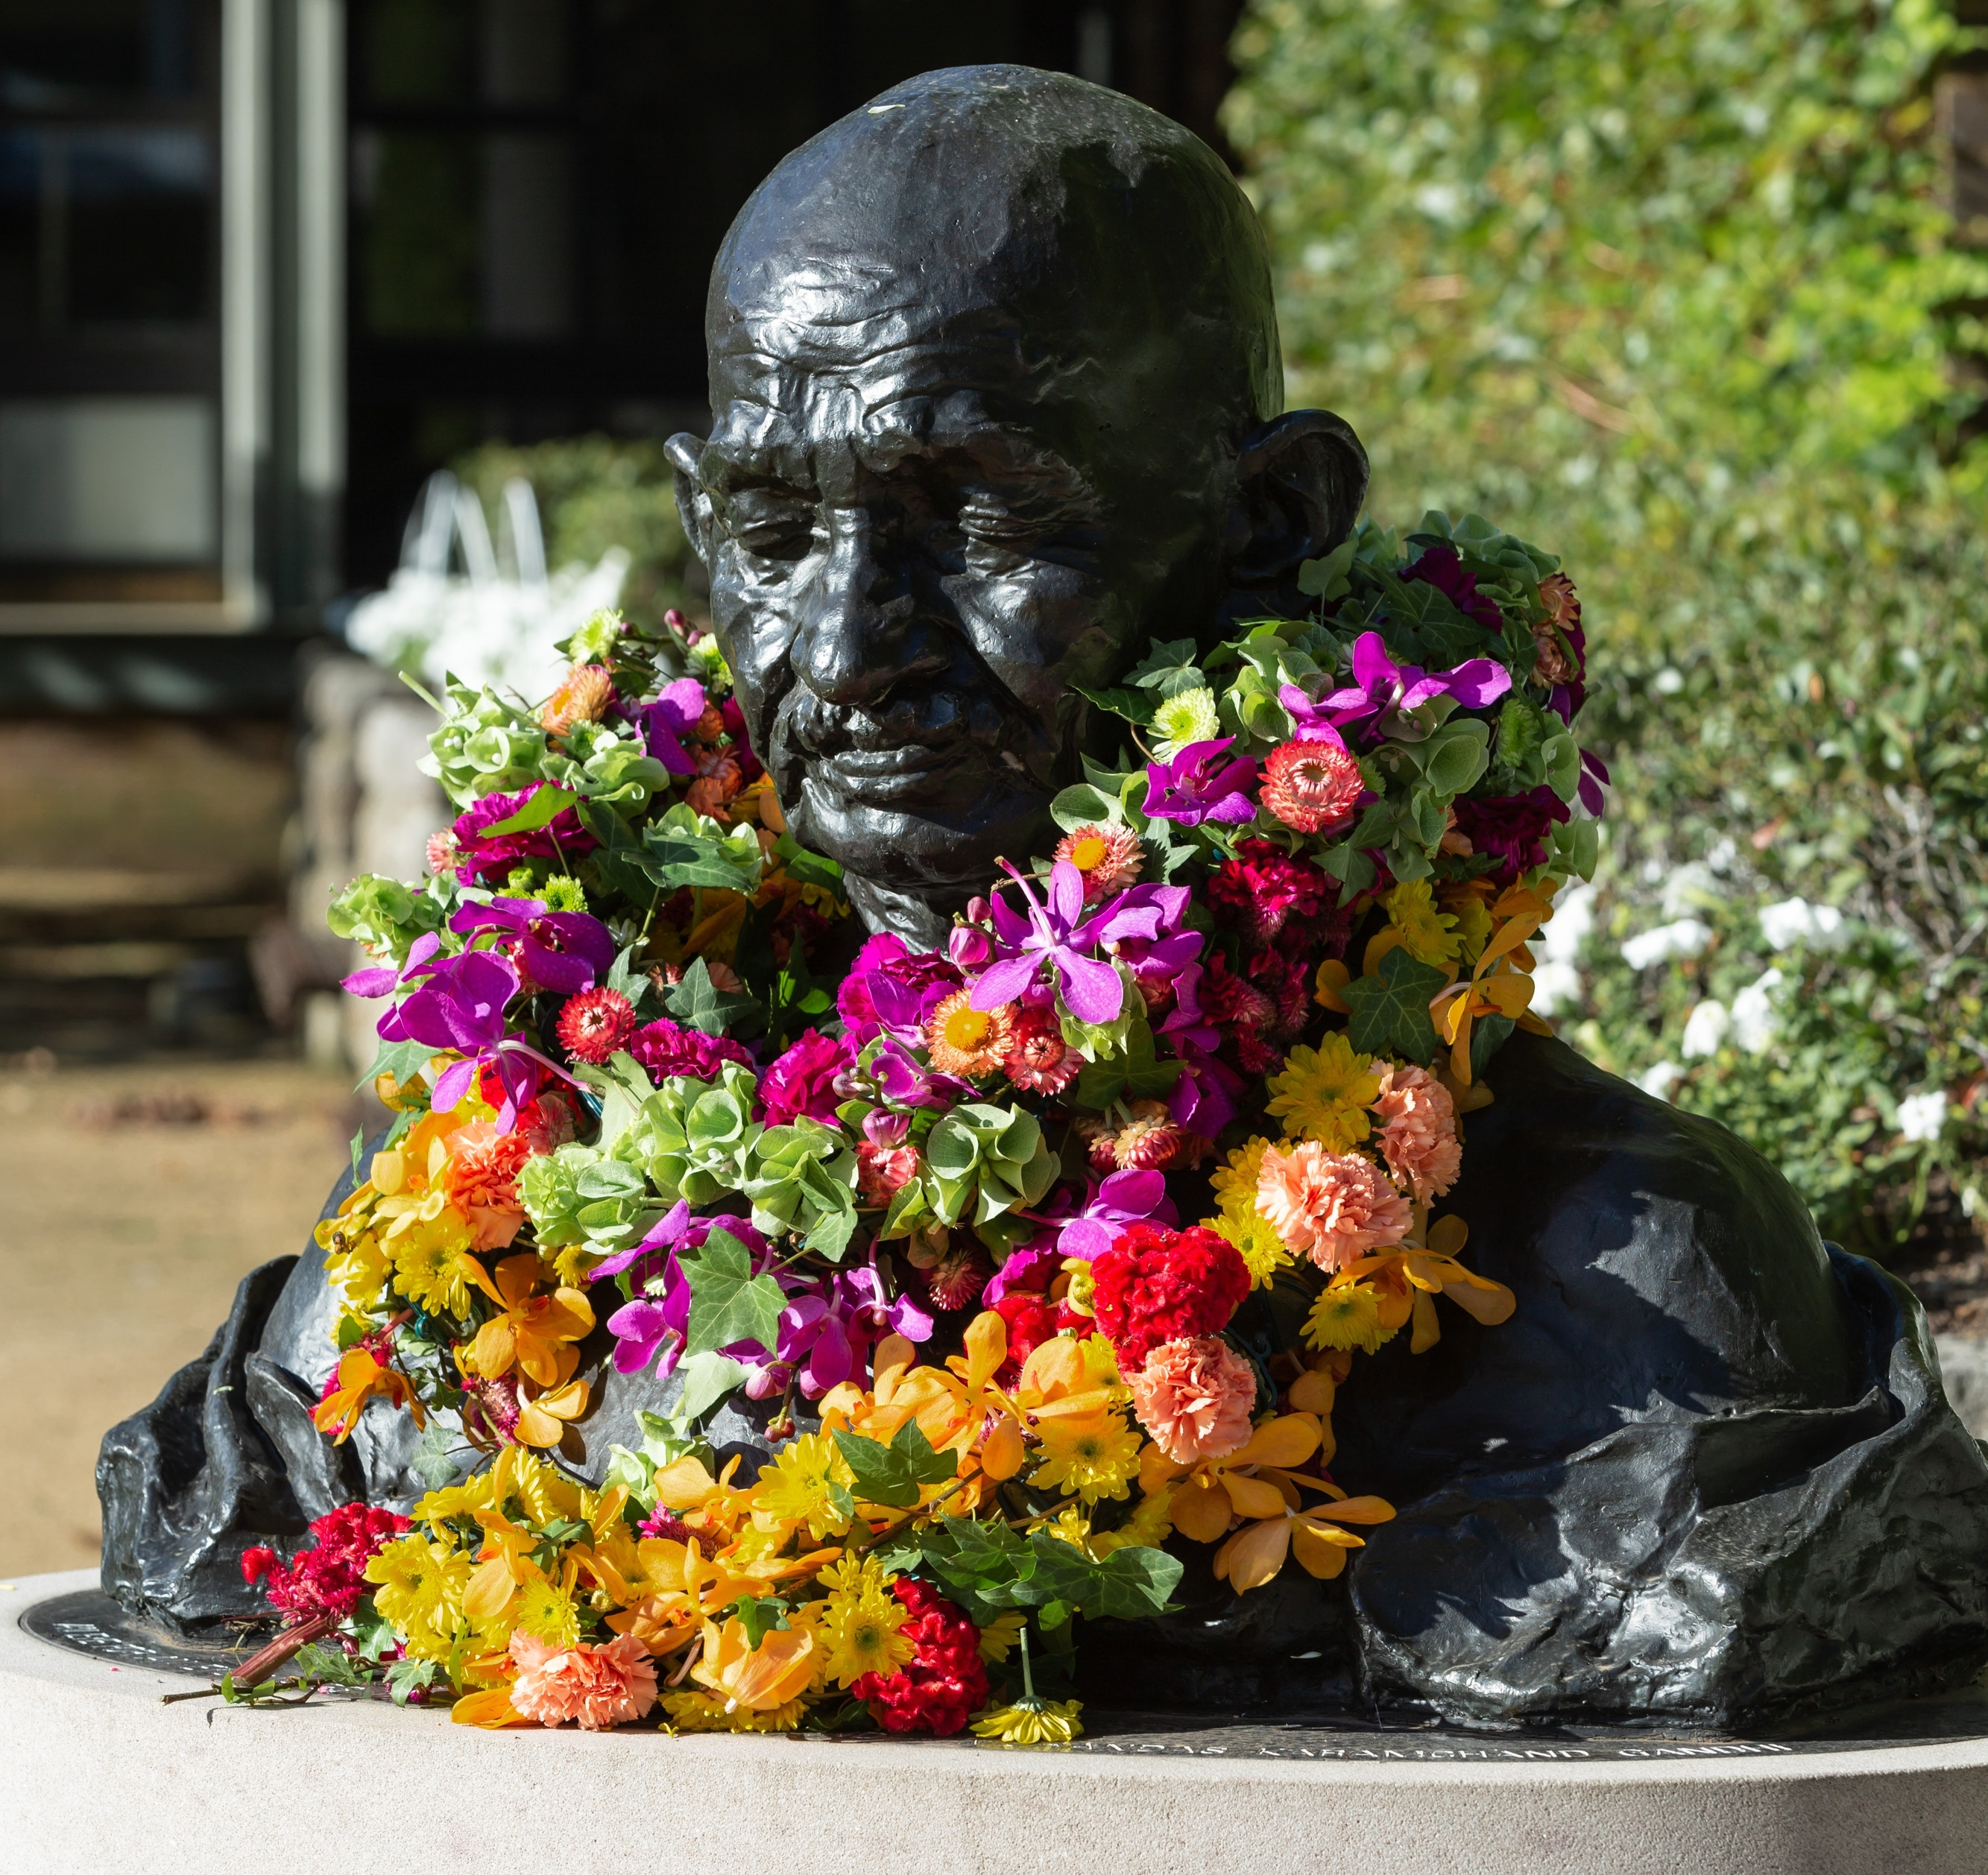 gandhi_bust_with_ceremonial_flowers